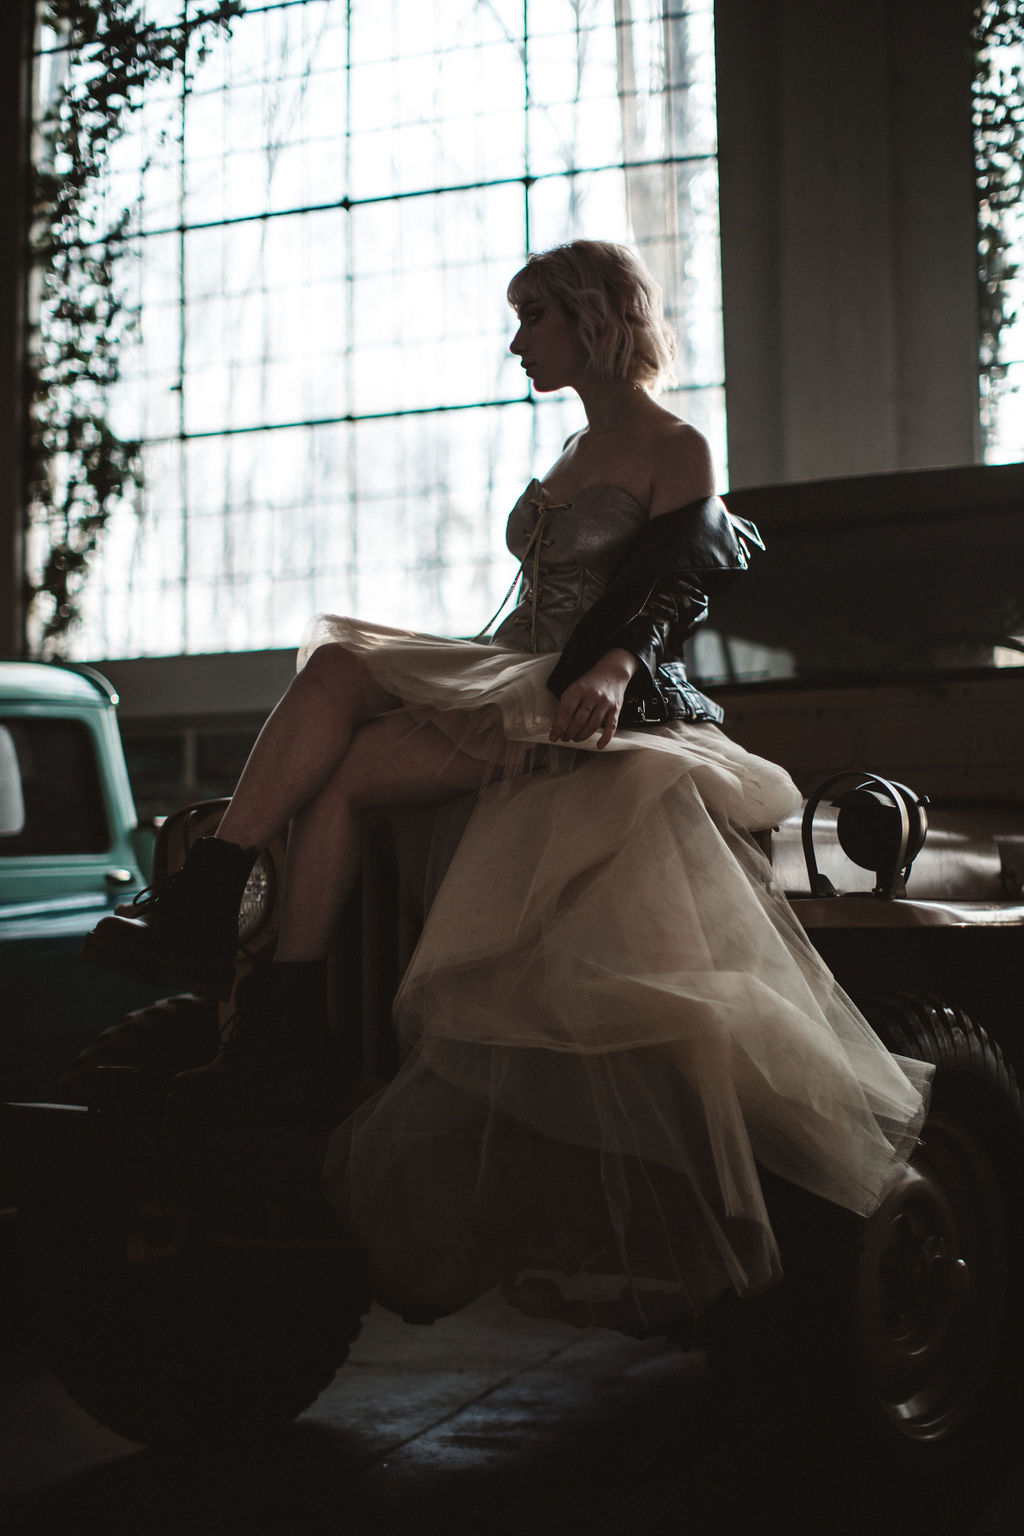 modern industrial wedding - alternative wedding - unconventional wedding - edgy wedding - artistic bridal photoshoot